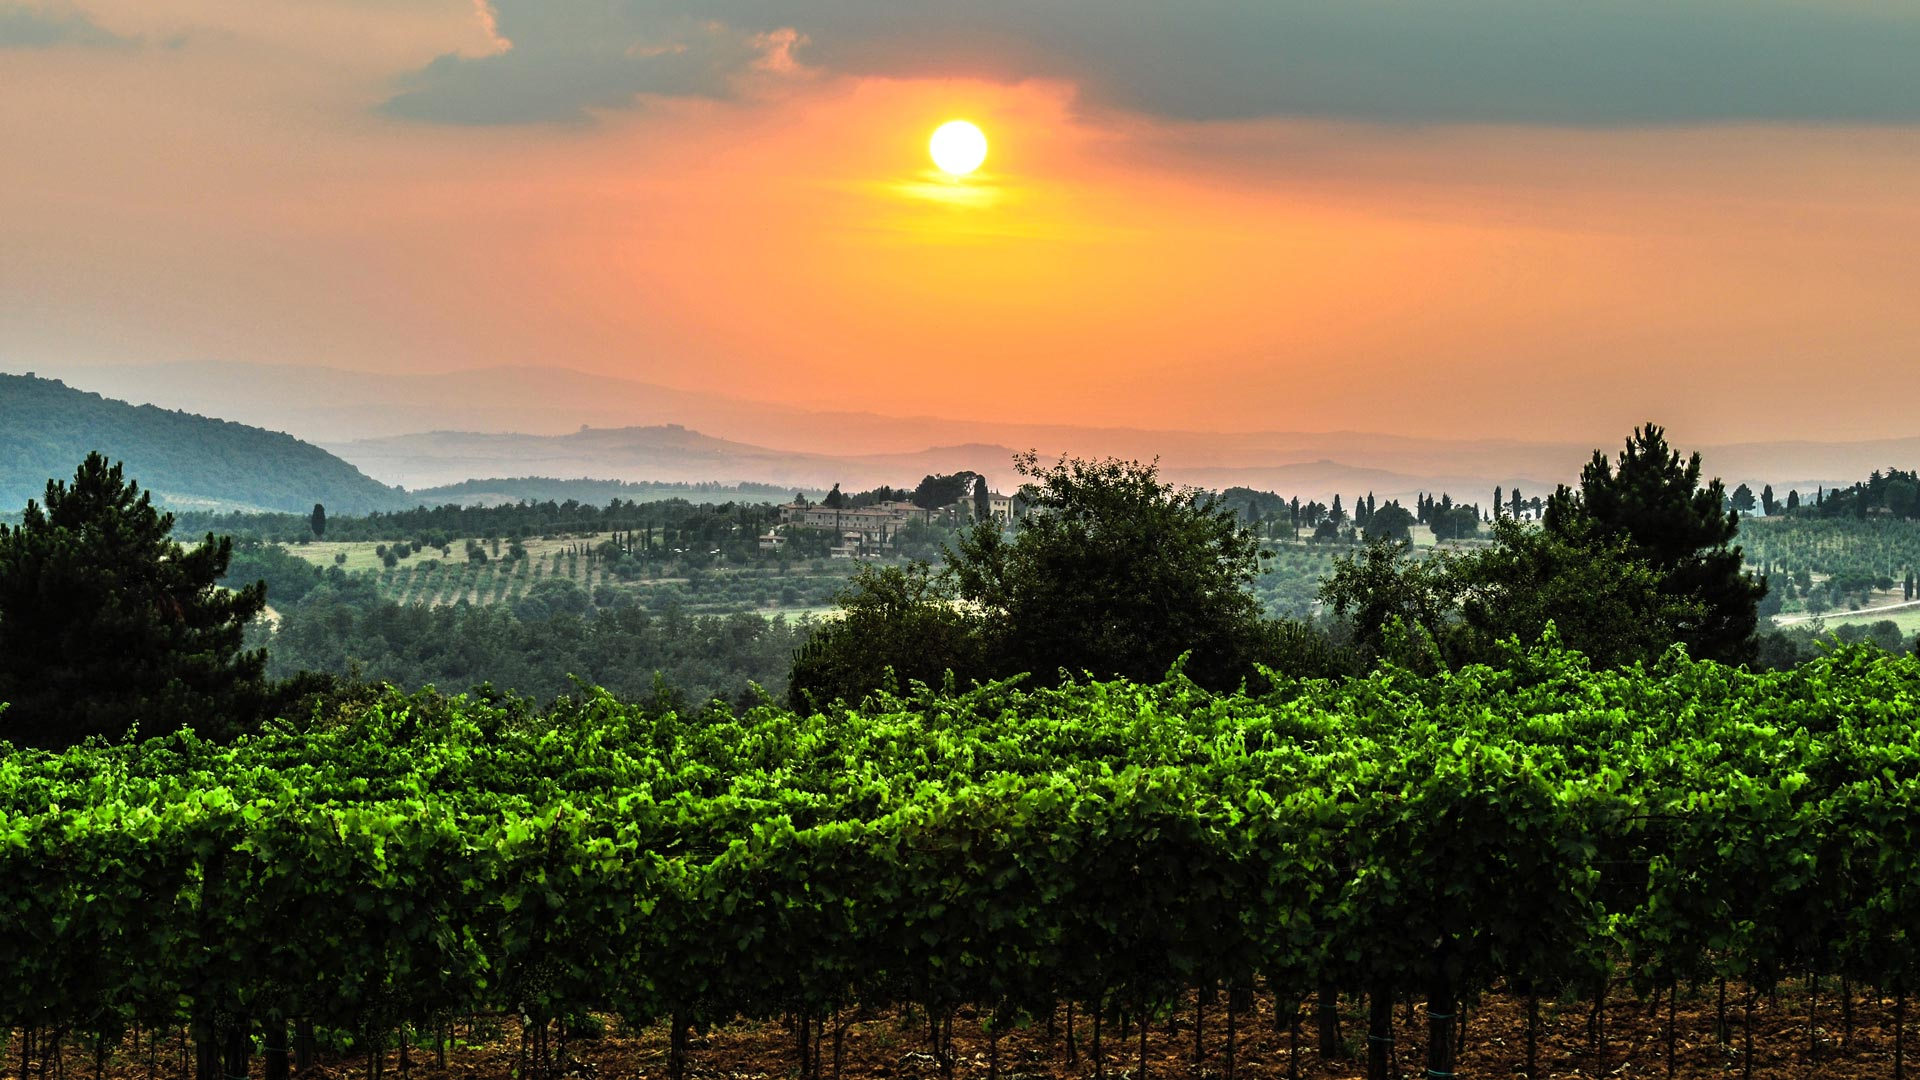 Copy of A beautiful sunset over our lush vines